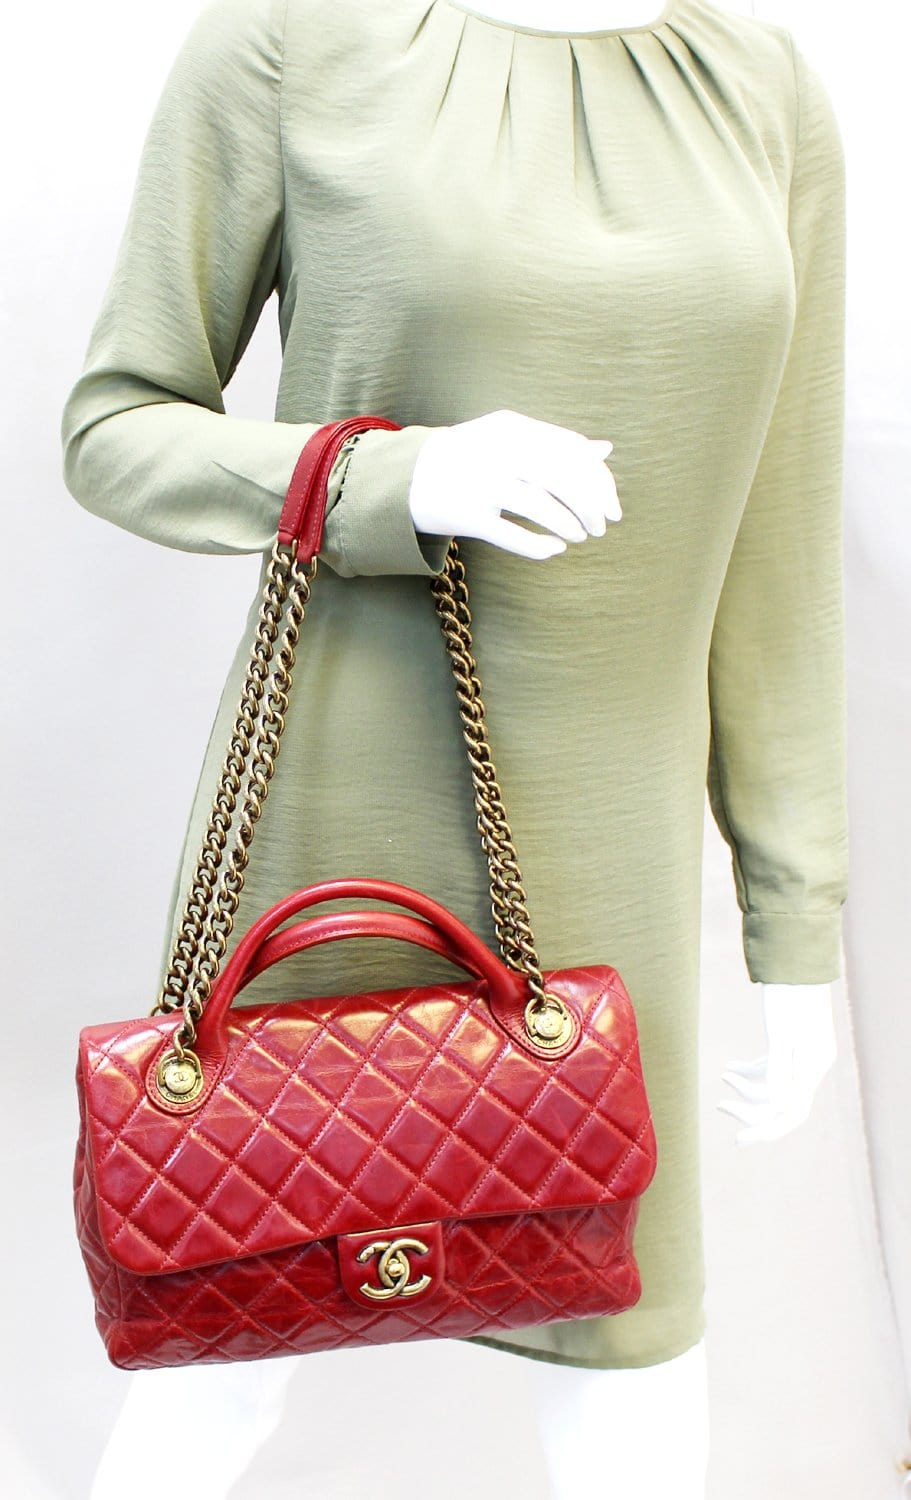 c908a14f12f0 CHANEL Red Quilted Glazed Calfskin Leather Large Castle Rock Top Handle Bag